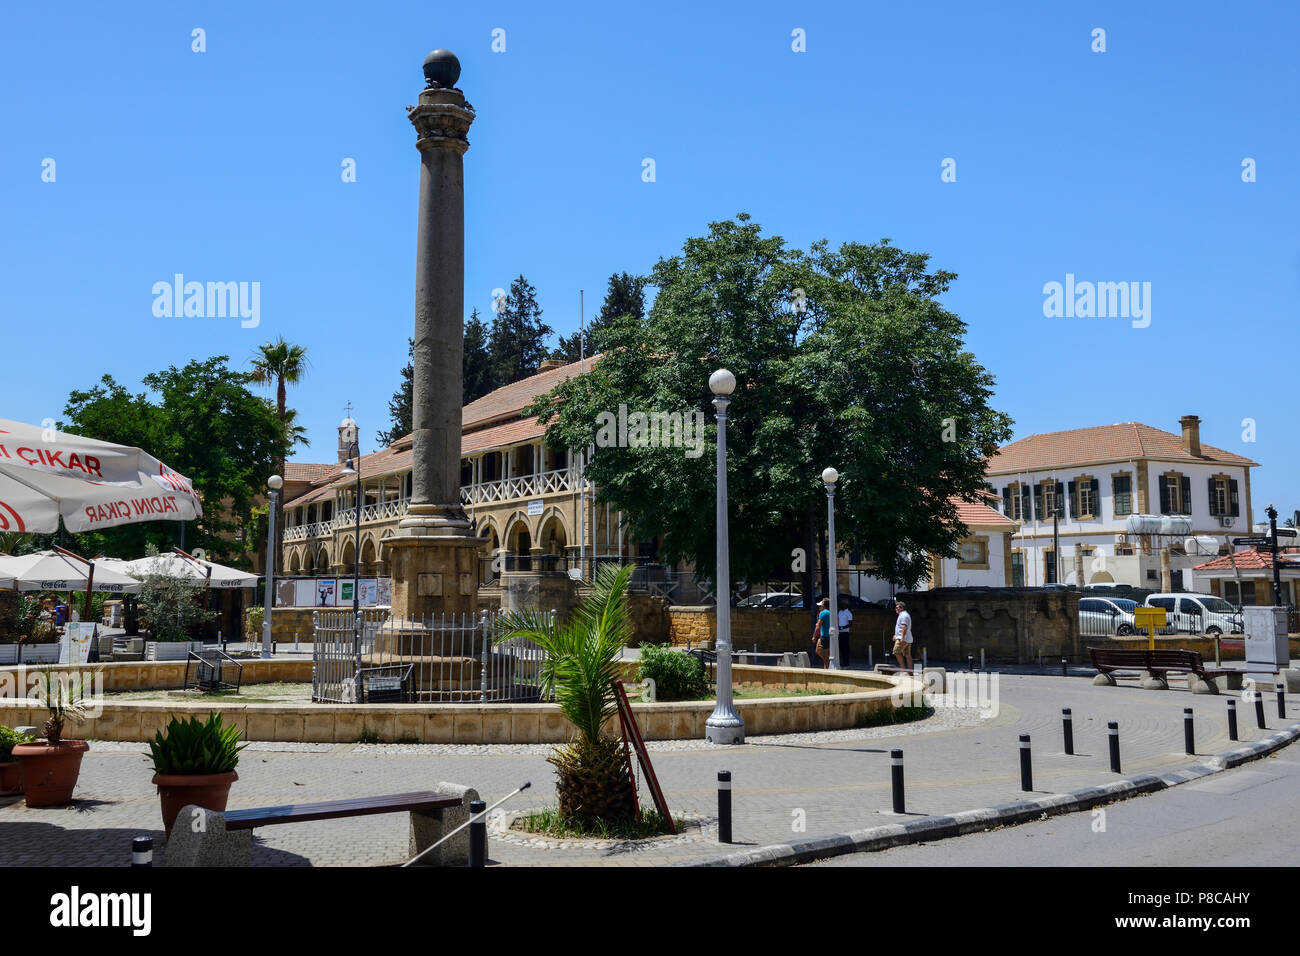 Venetian Column with Law Courts in background in Atatürk Square (Sarayönü Square) in North Nicosia (Lefkosa), Turkish Republic of Northern Cyprus - Stock Image